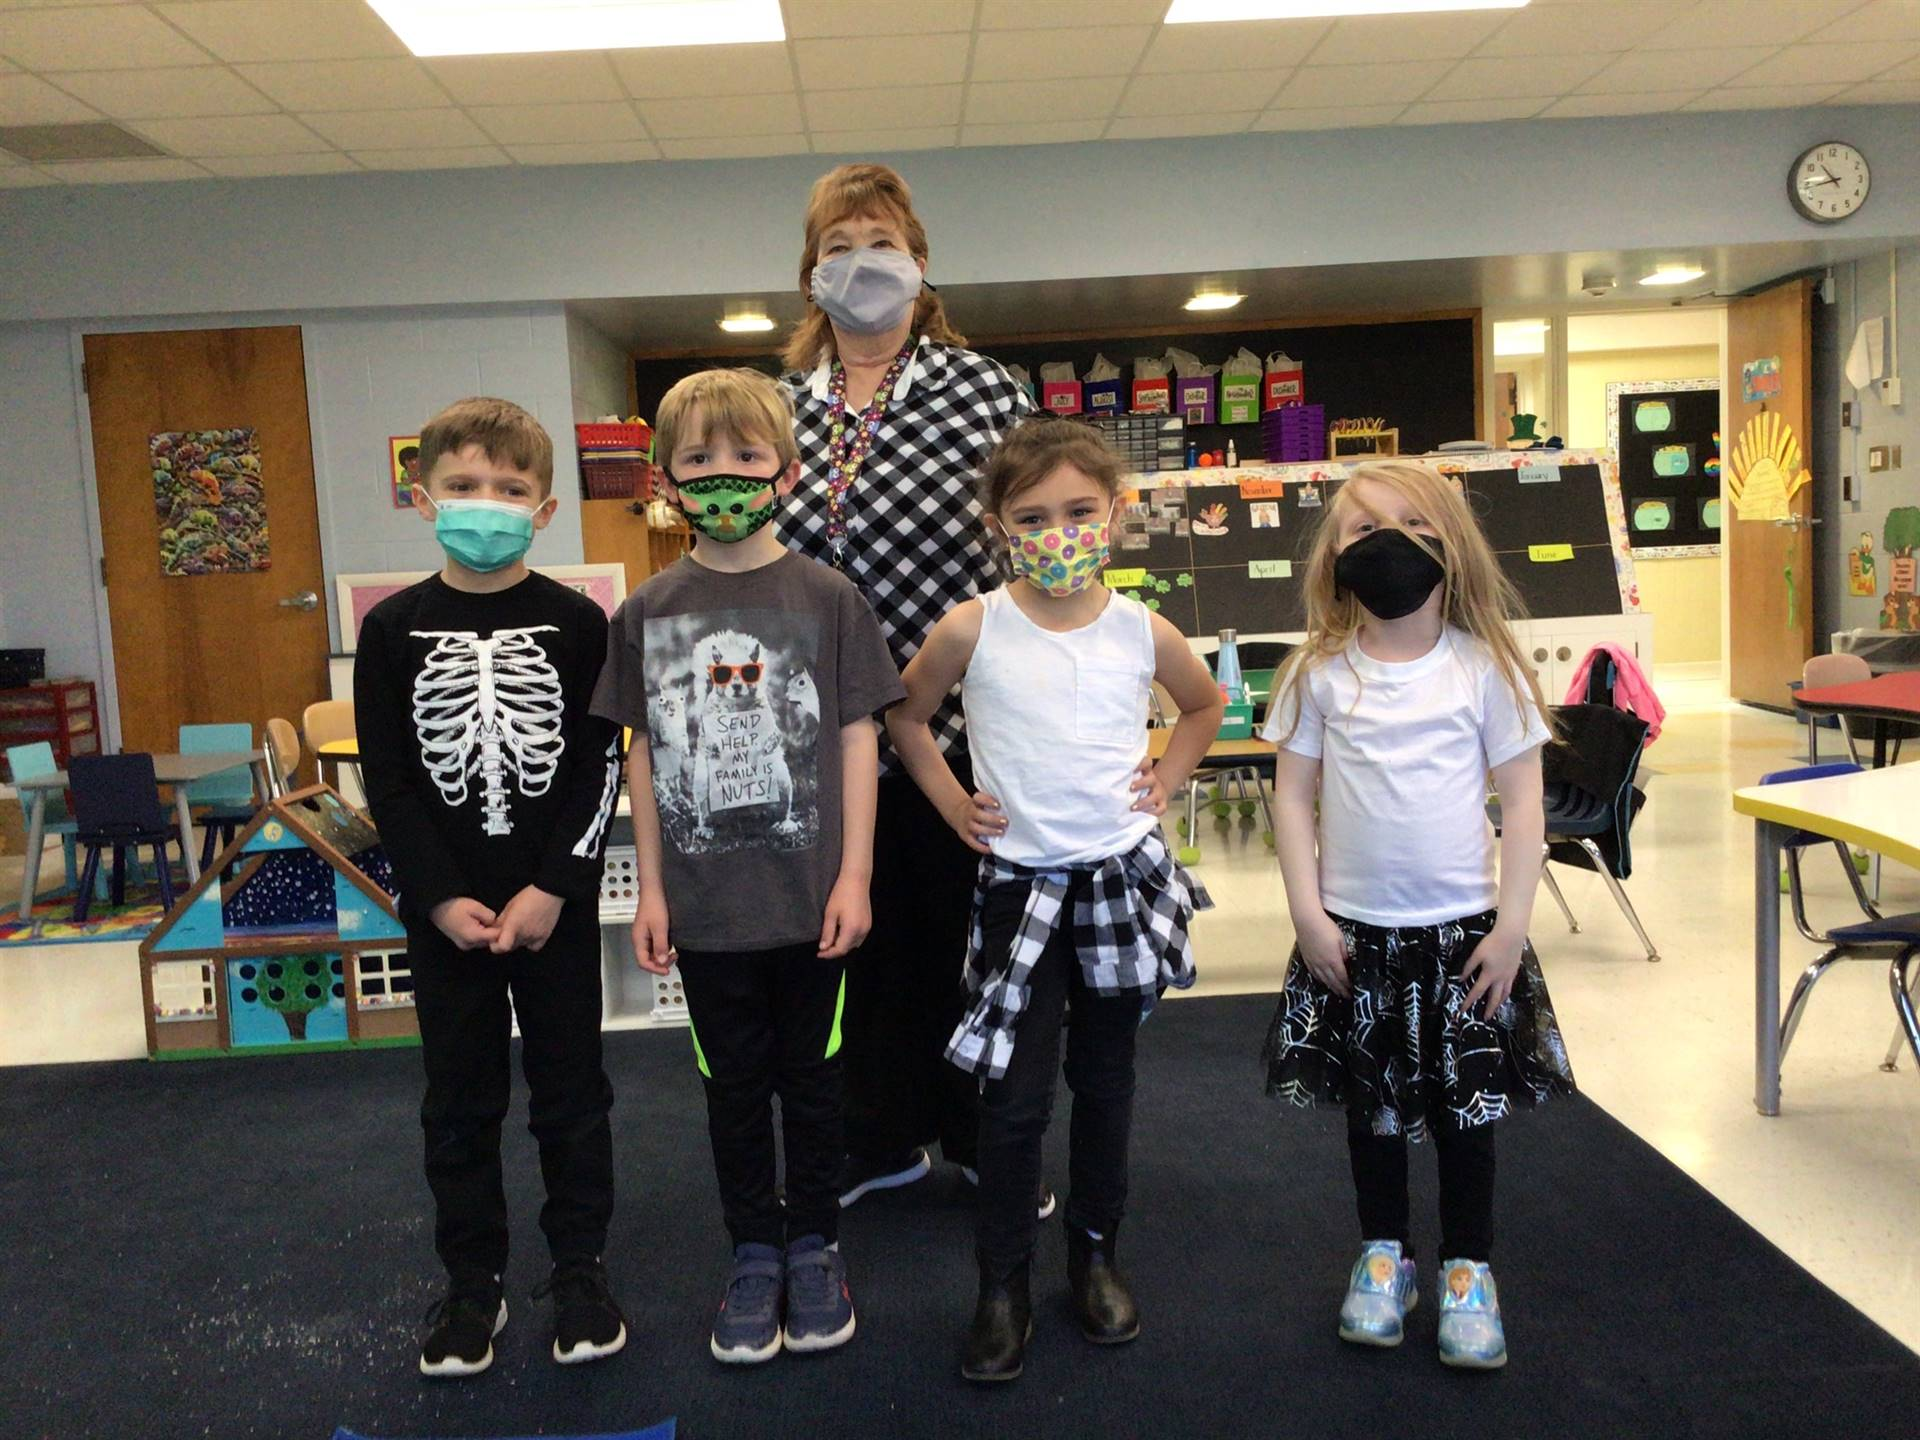 students dressed in black and white